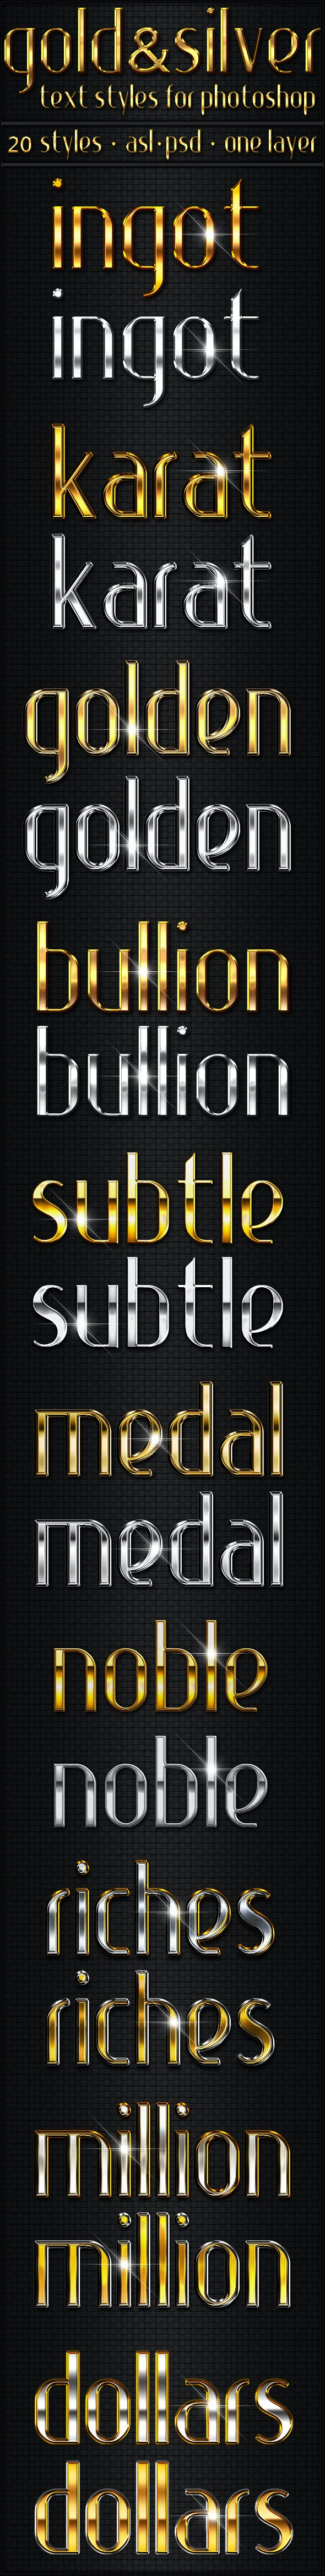 Gold & Silver - Text Styles - Text Effects Styles